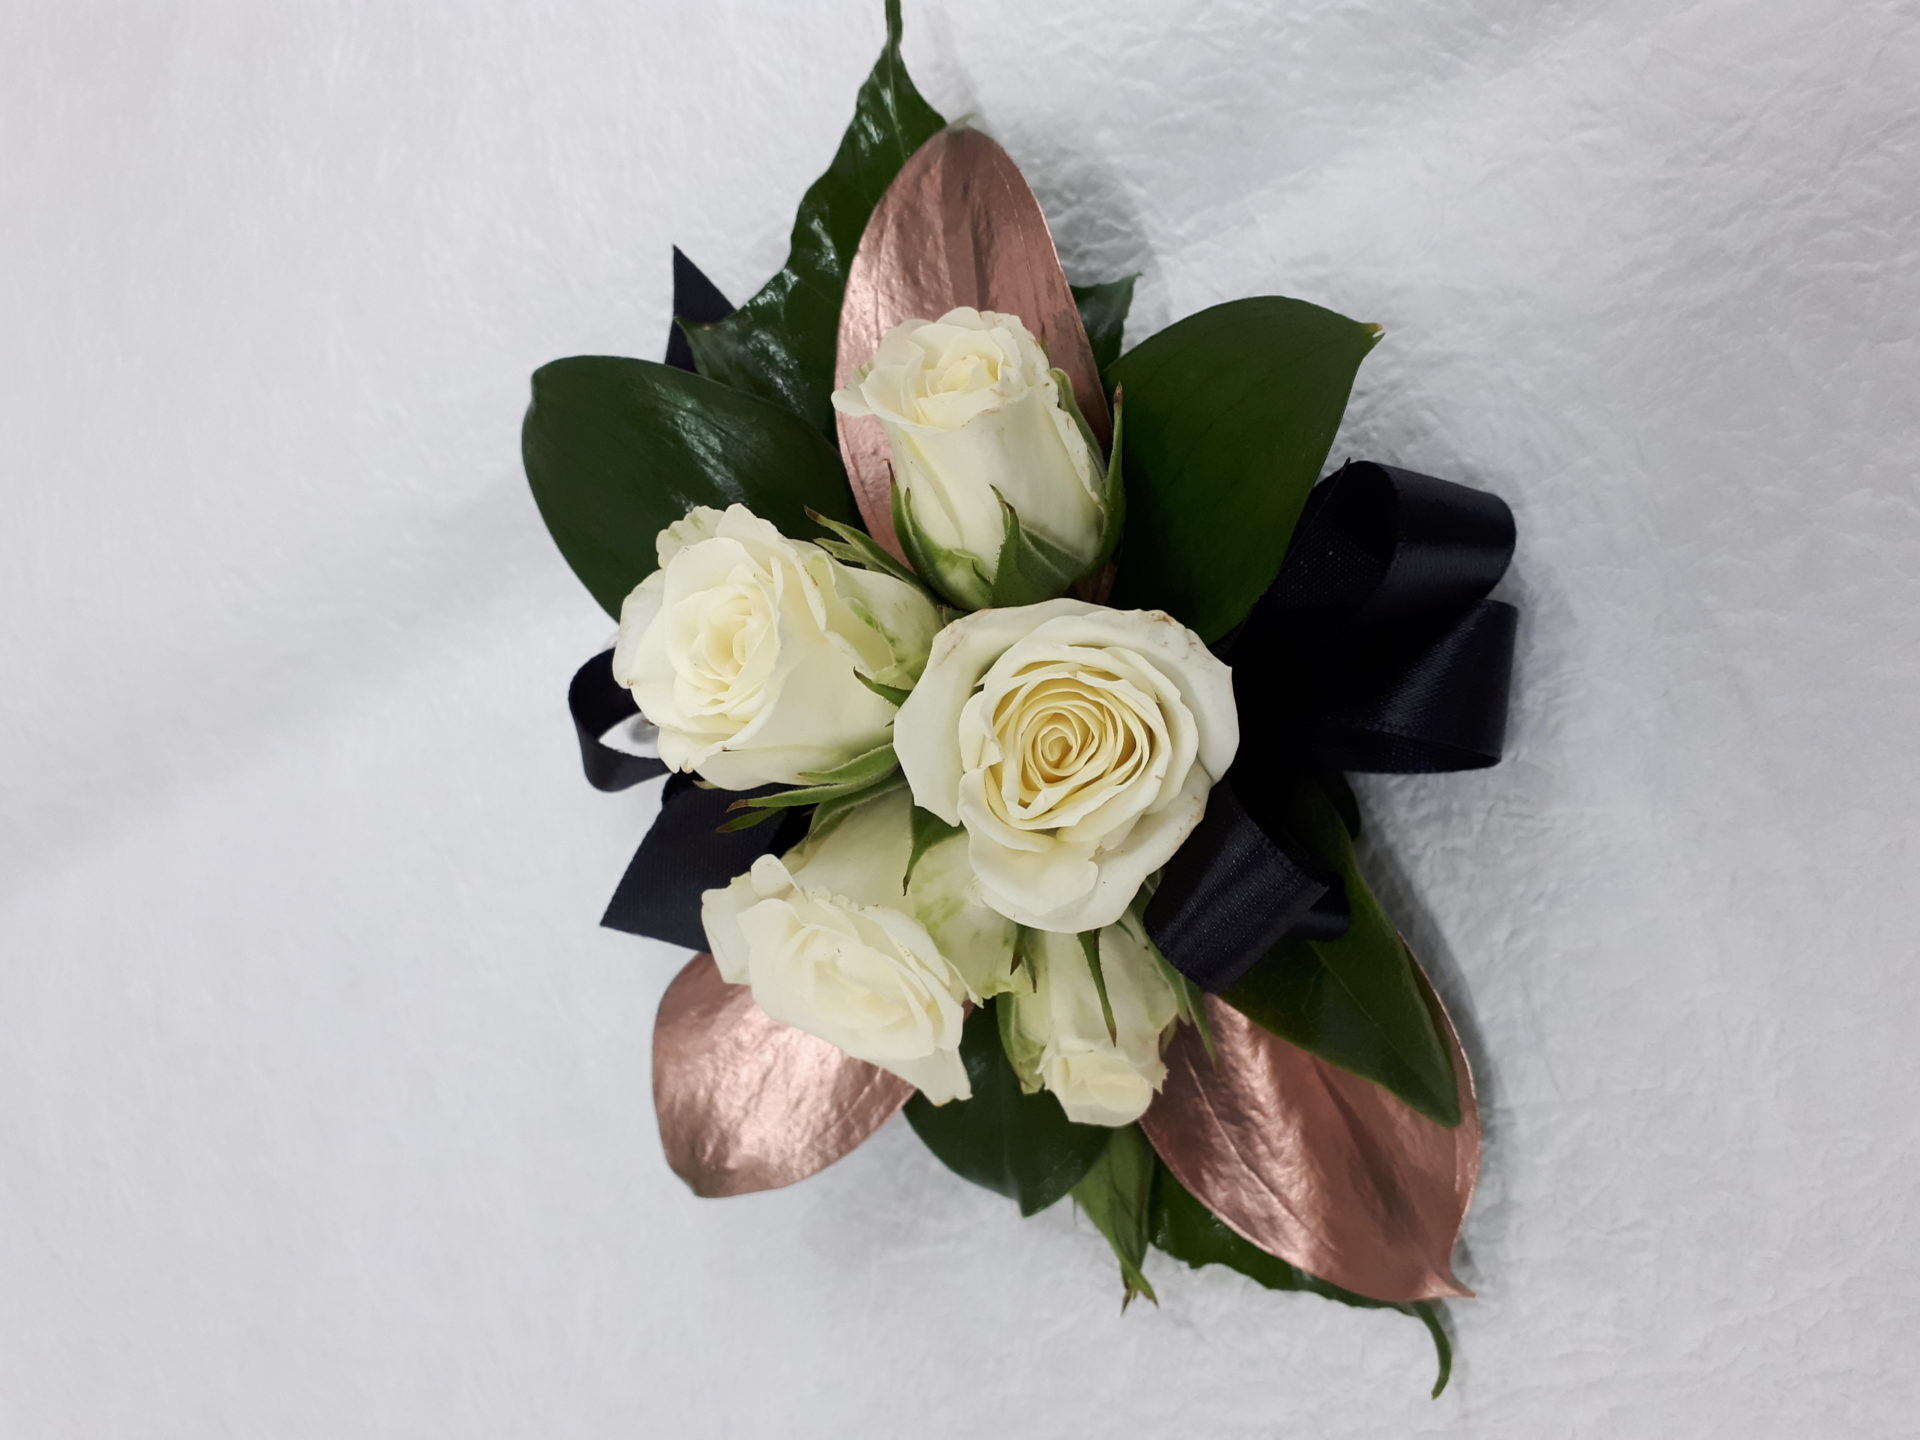 White spray roses with rose gold leaves